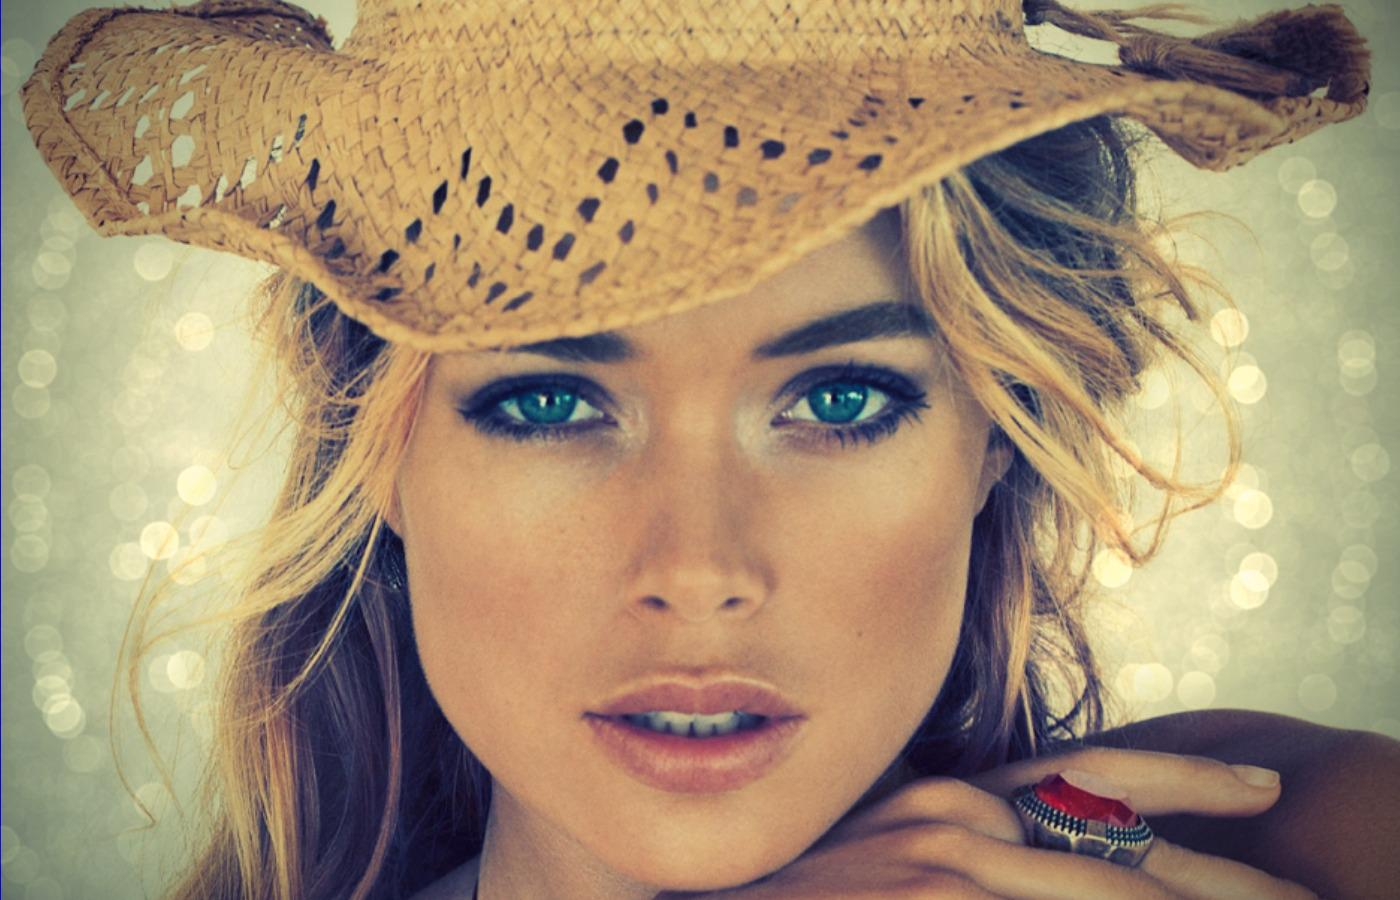 hd doutzen kroes stunning face mobile free background photos